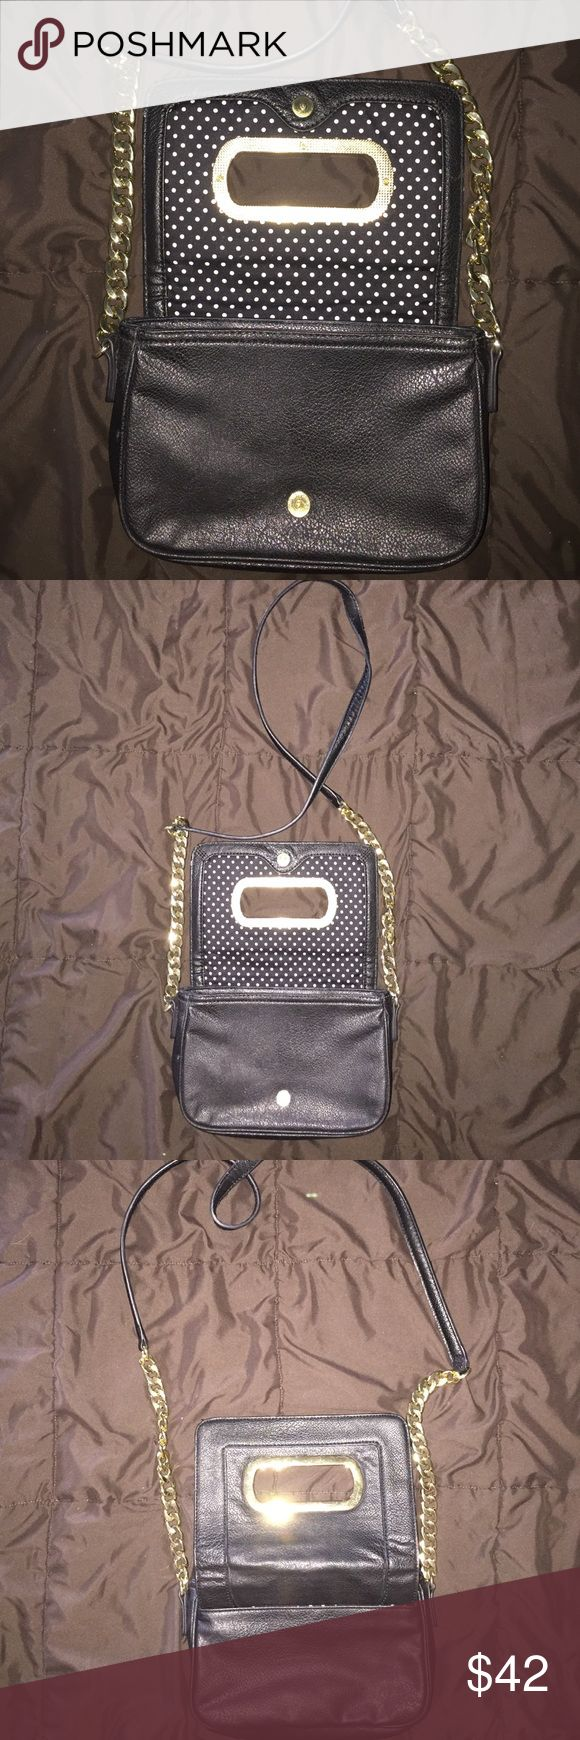 Banana Republic Chain crossover purse Great condition Holiday chain Black cross over purse Banana Republic Bags Crossbody Bags